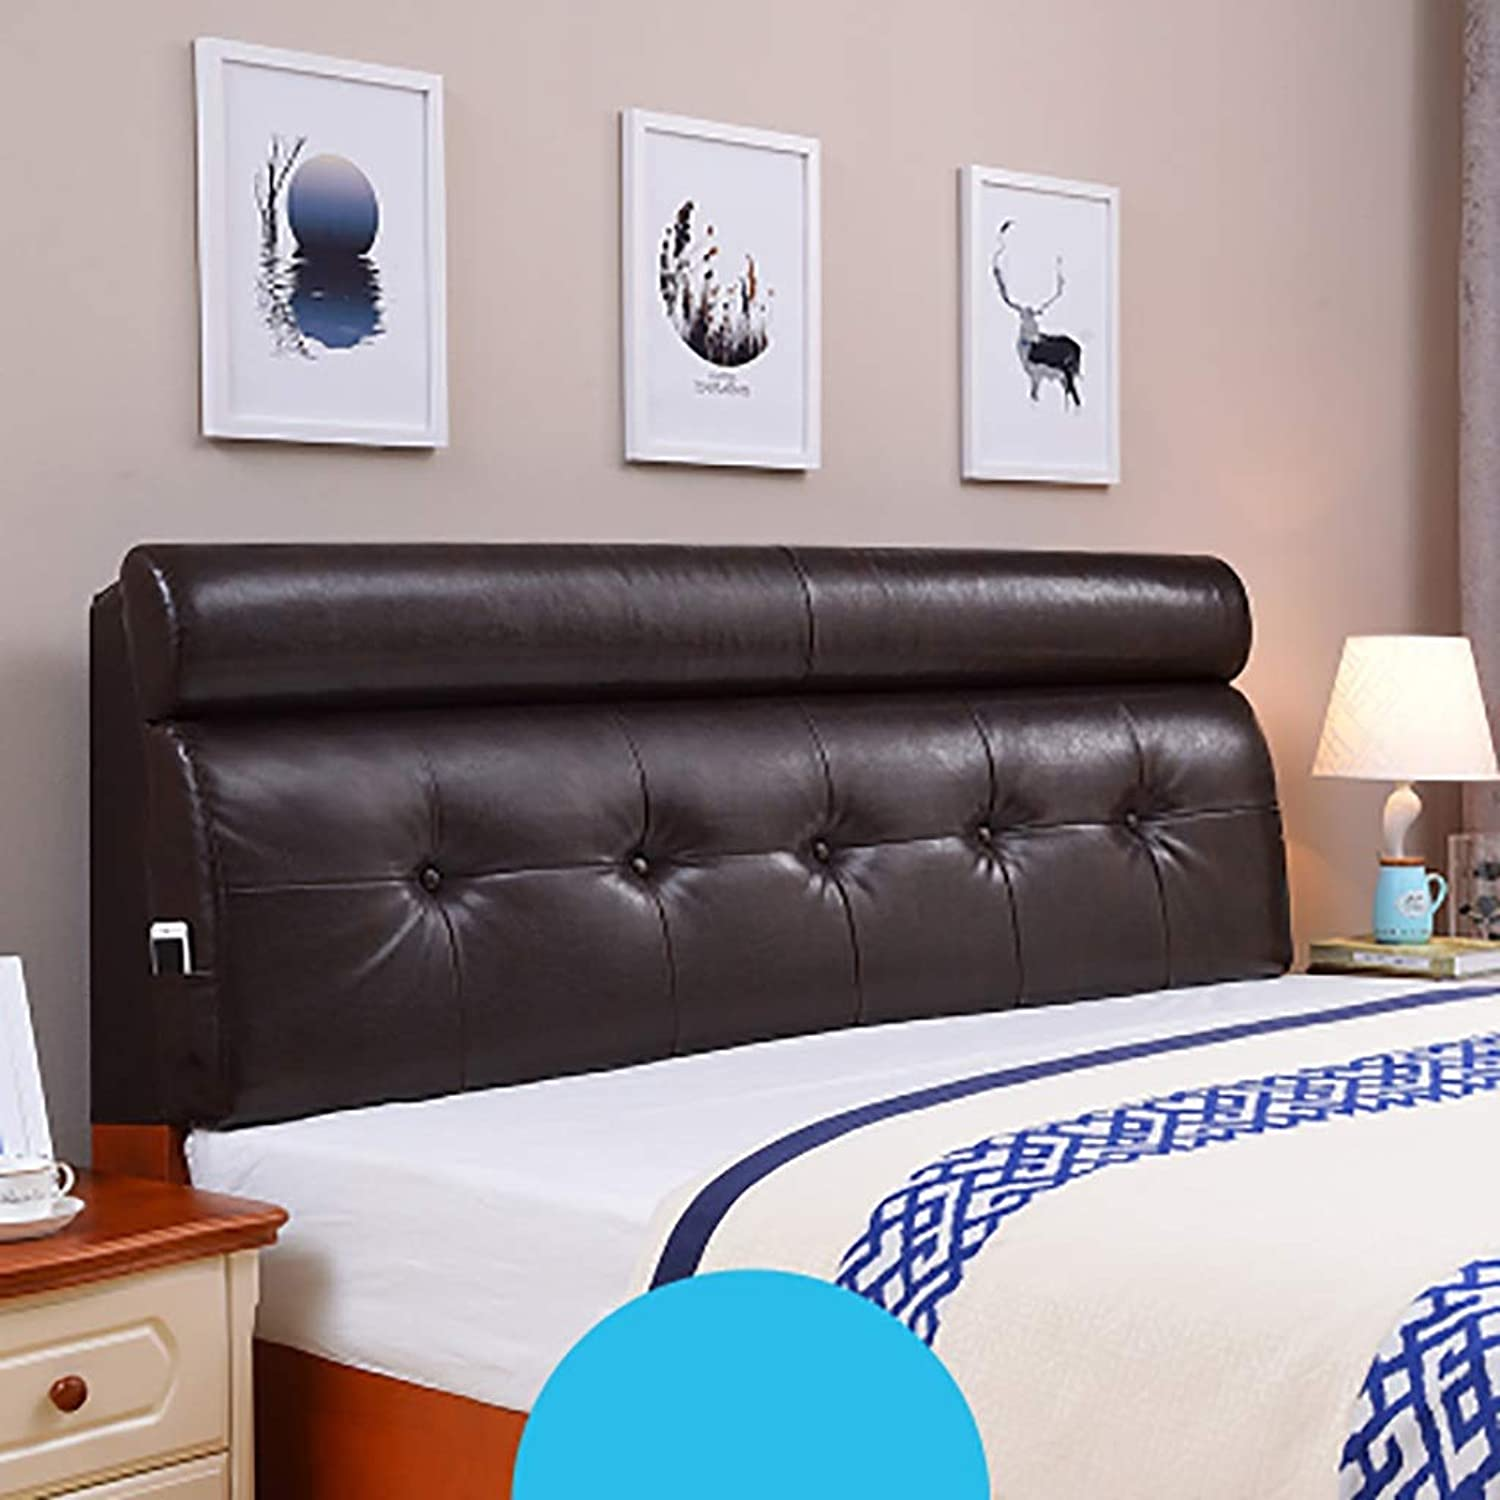 Headboard Bed Backrest Cushion Bed Cushion Bedside Pillow Leather with Bed headboard Large Soft Pillow Lumbar Support,Detachable 5 Solid colors 14 Sizes (color   Dark Brown, Size   100  60  10CM)